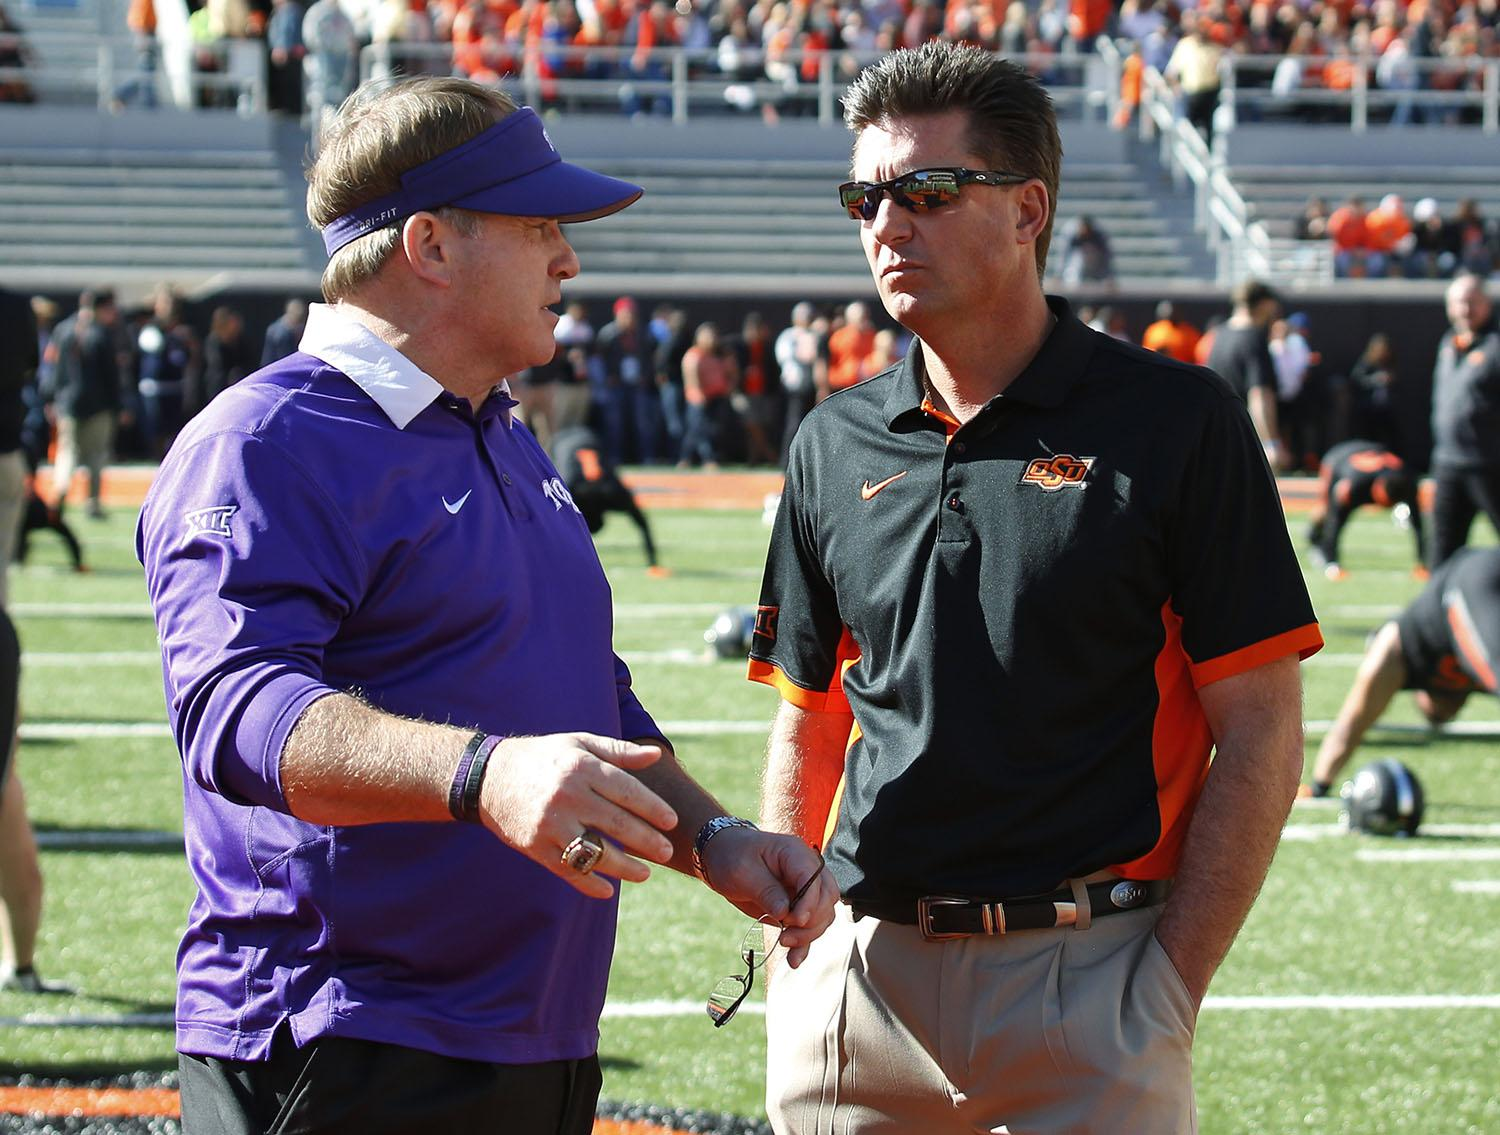 TCU head coach Gary Patterson, left, and Oklahoma State head coach Mike Gundy, right, talk before the start of an NCAA college football game in Stillwater, Okla., Saturday, Nov. 7, 2015. (AP Photo/Sue Ogrocki)